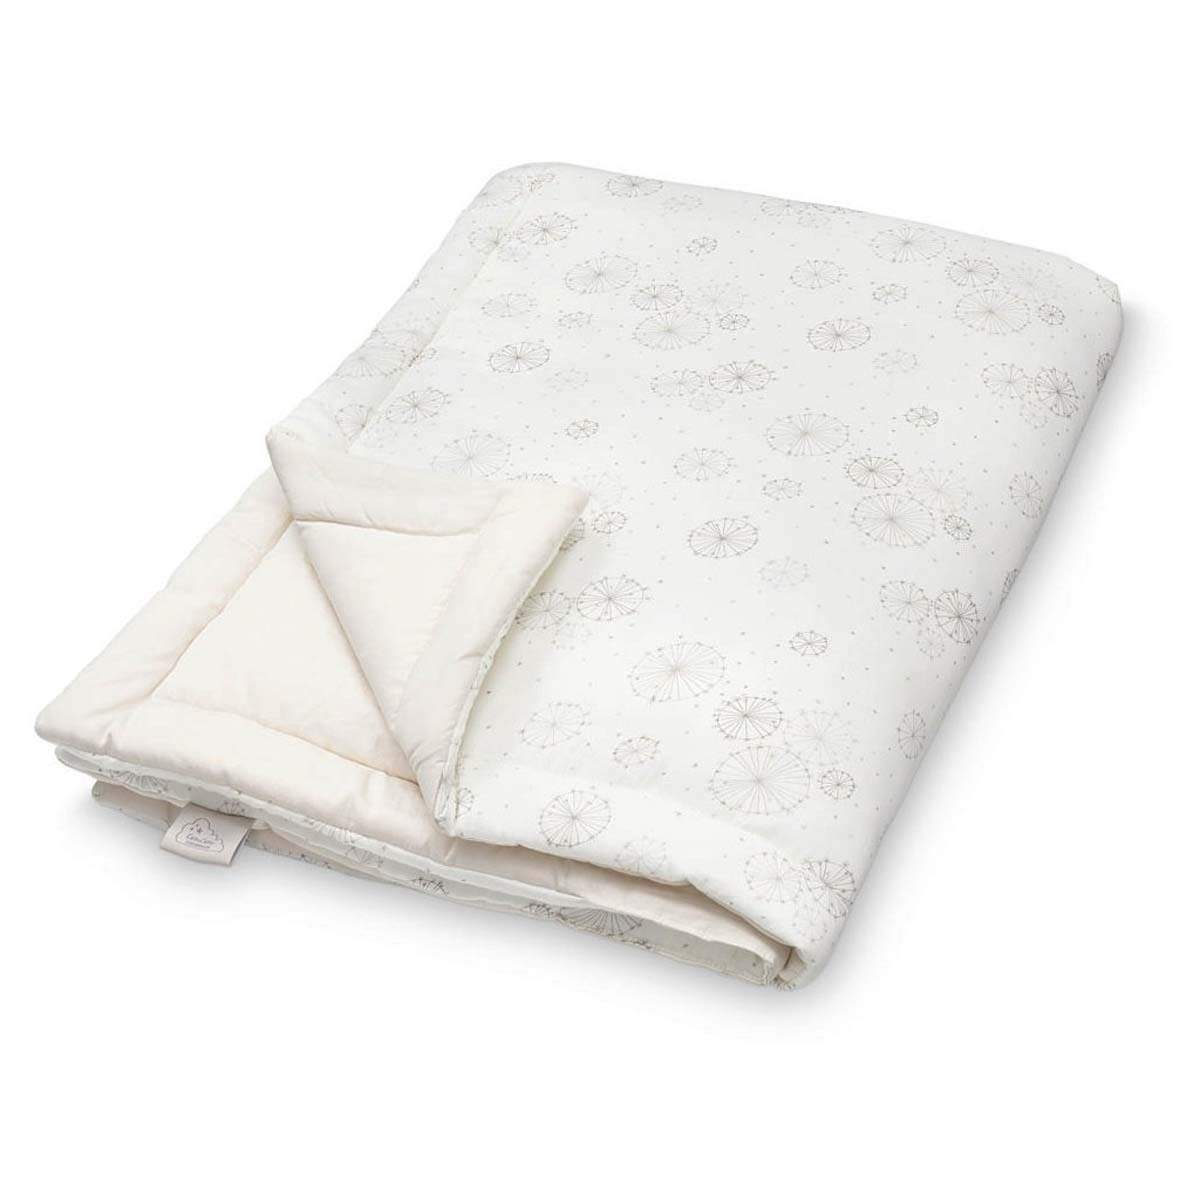 Linge de lit Couverture - Dandelion Natural Couverture - Dandelion Natural